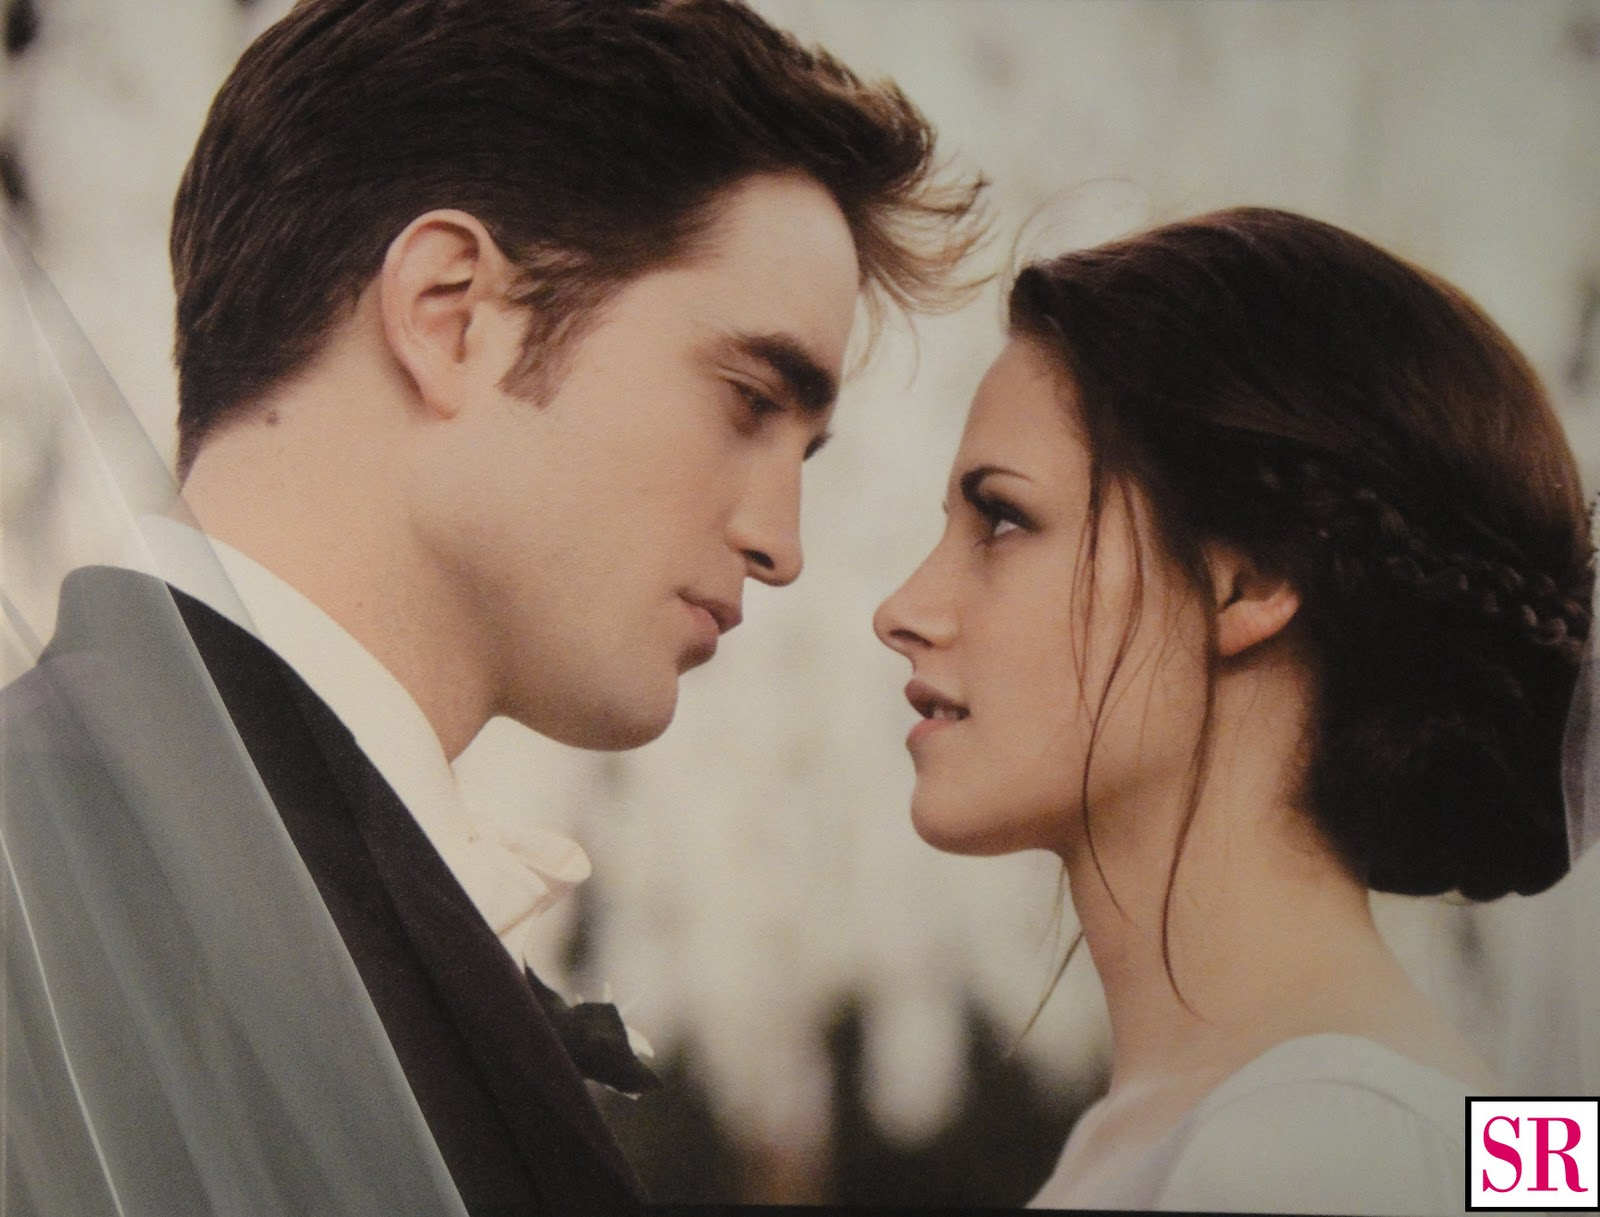 Edward & Bella's wedding - Belward 4ever Photo (36110054 ...